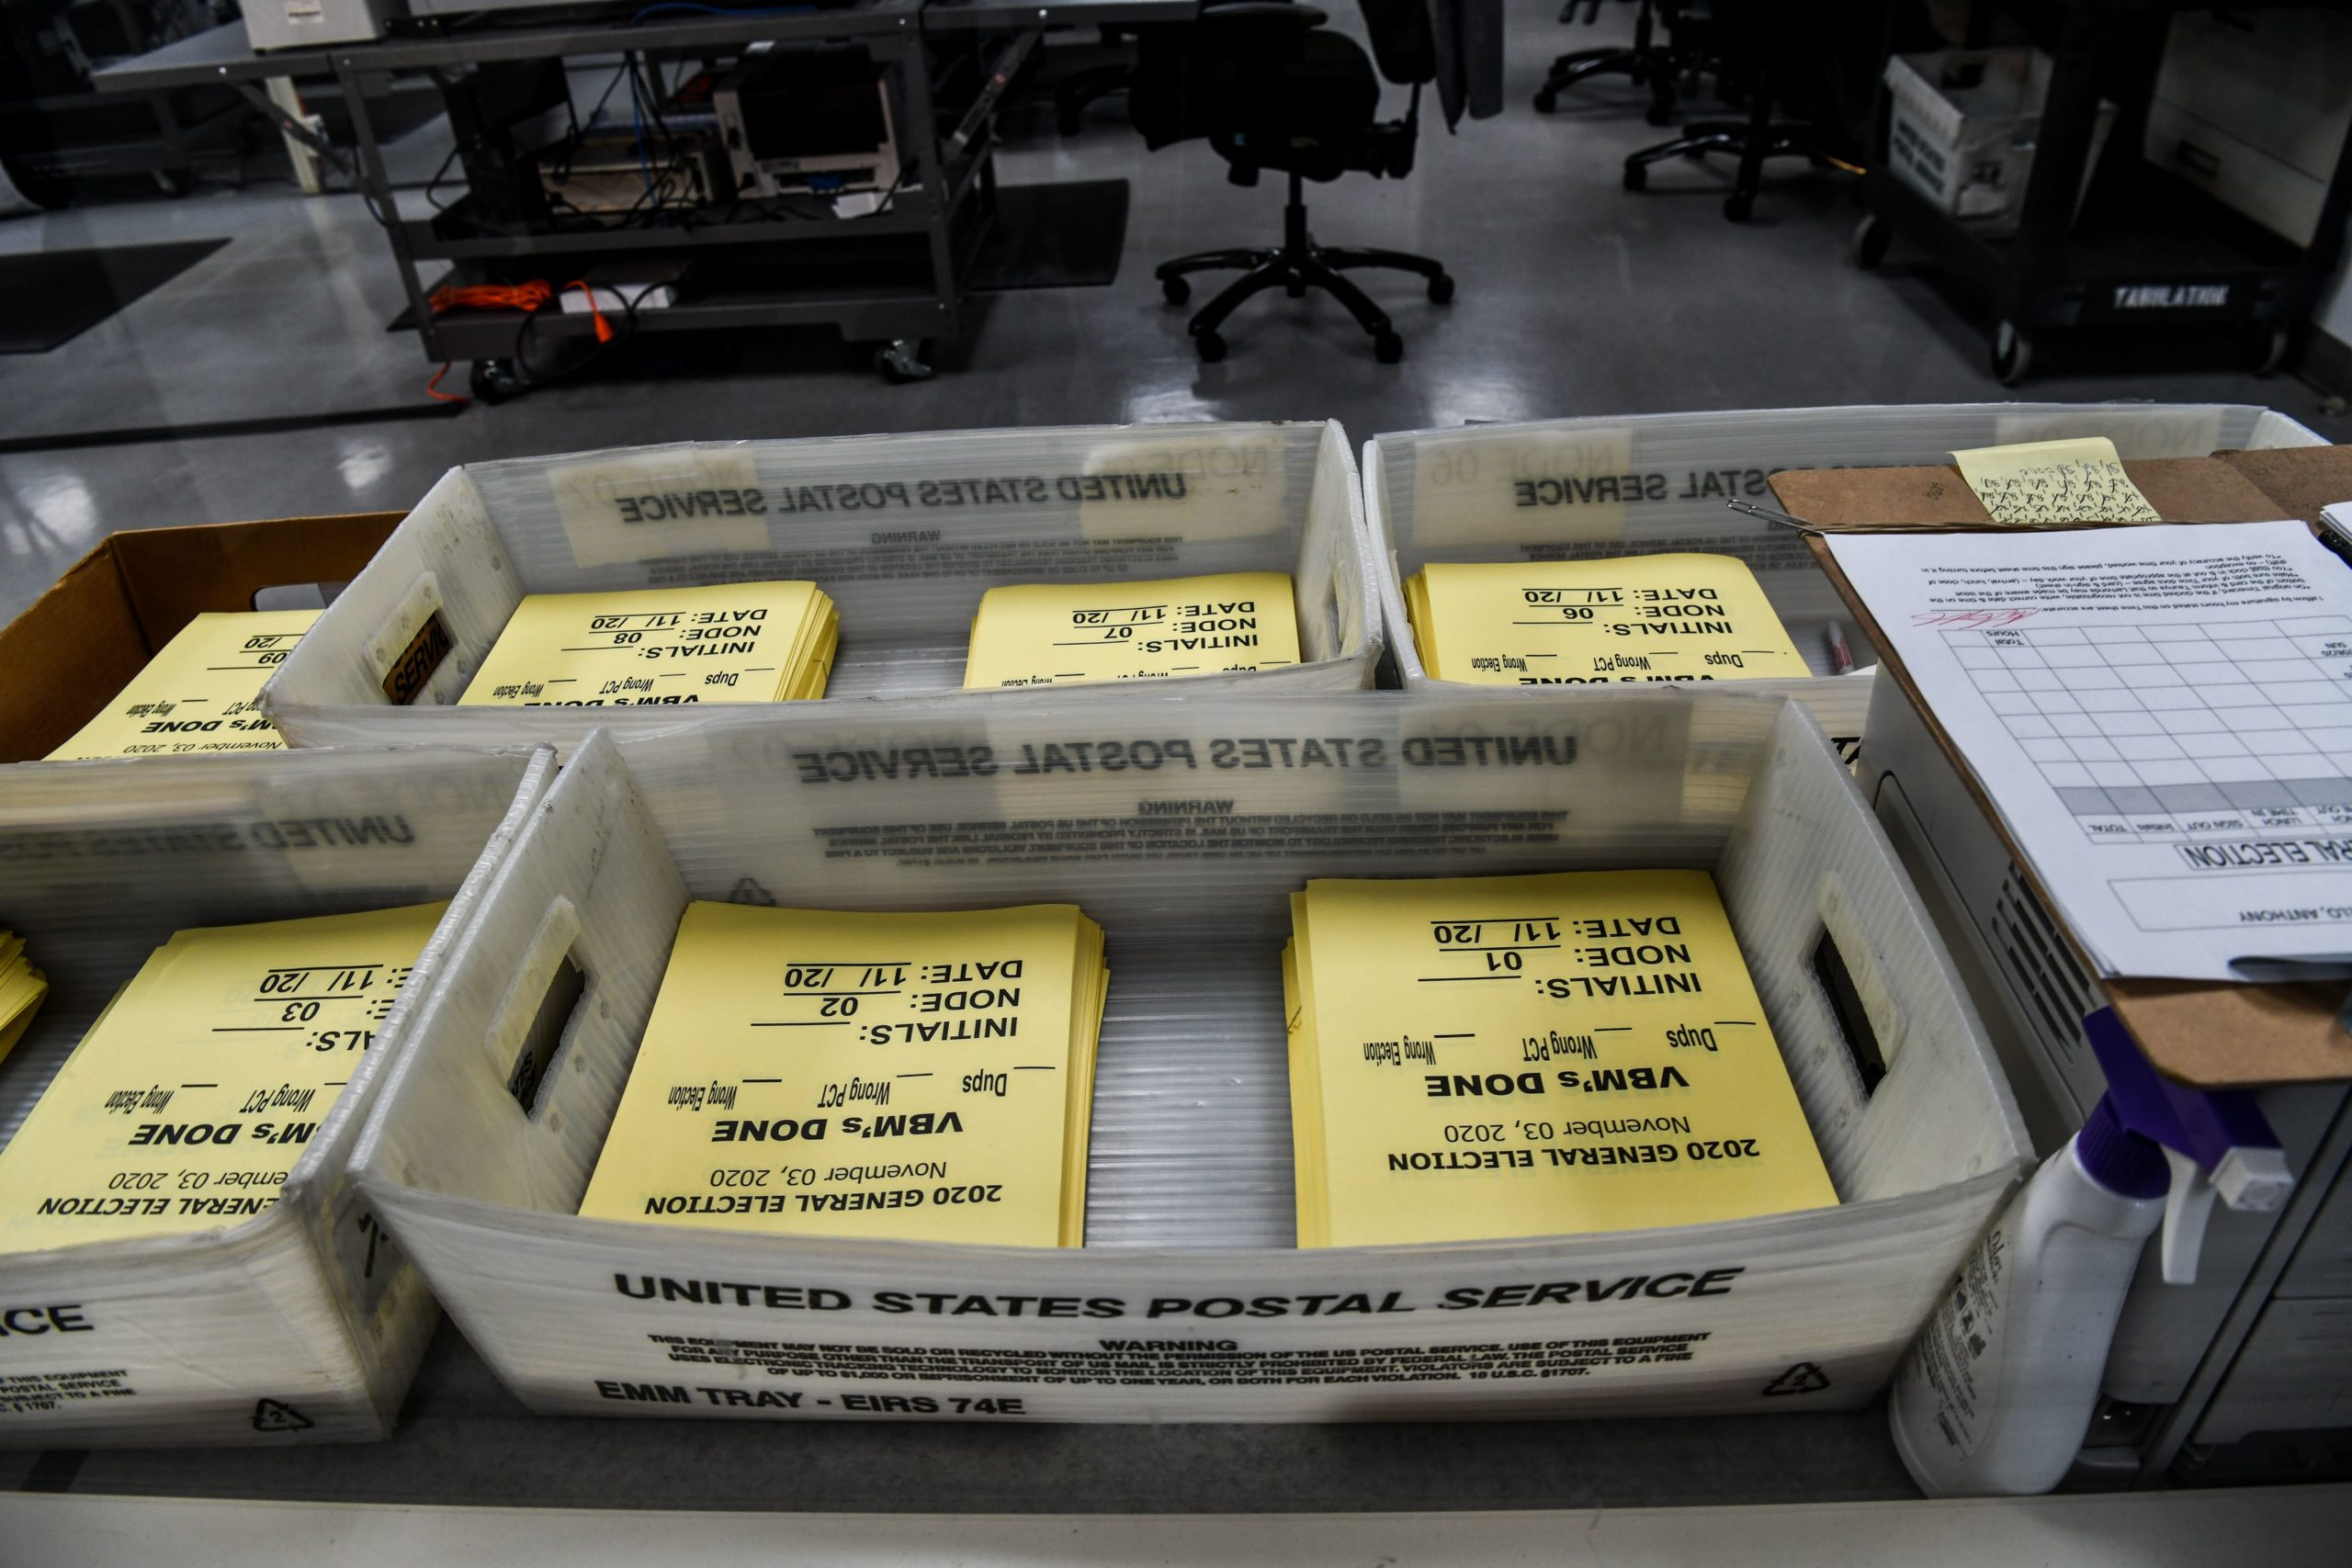 """Paperwork for sorting ballots is seen during the vote-by-mail ballot scanning process at the Miami-Dade County Election Department in Miami, Florida on November 3, 2020. - The US started voting Tuesday in an election amounting to a referendum on Donald Trump's uniquely brash and bruising presidency, which Democratic opponent and frontrunner Joe Biden urged Americans to end to restore """"our democracy."""" (Photo by CHANDAN KHANNA / AFP) (Photo by CHANDAN KHANNA/AFP via Getty Images)"""